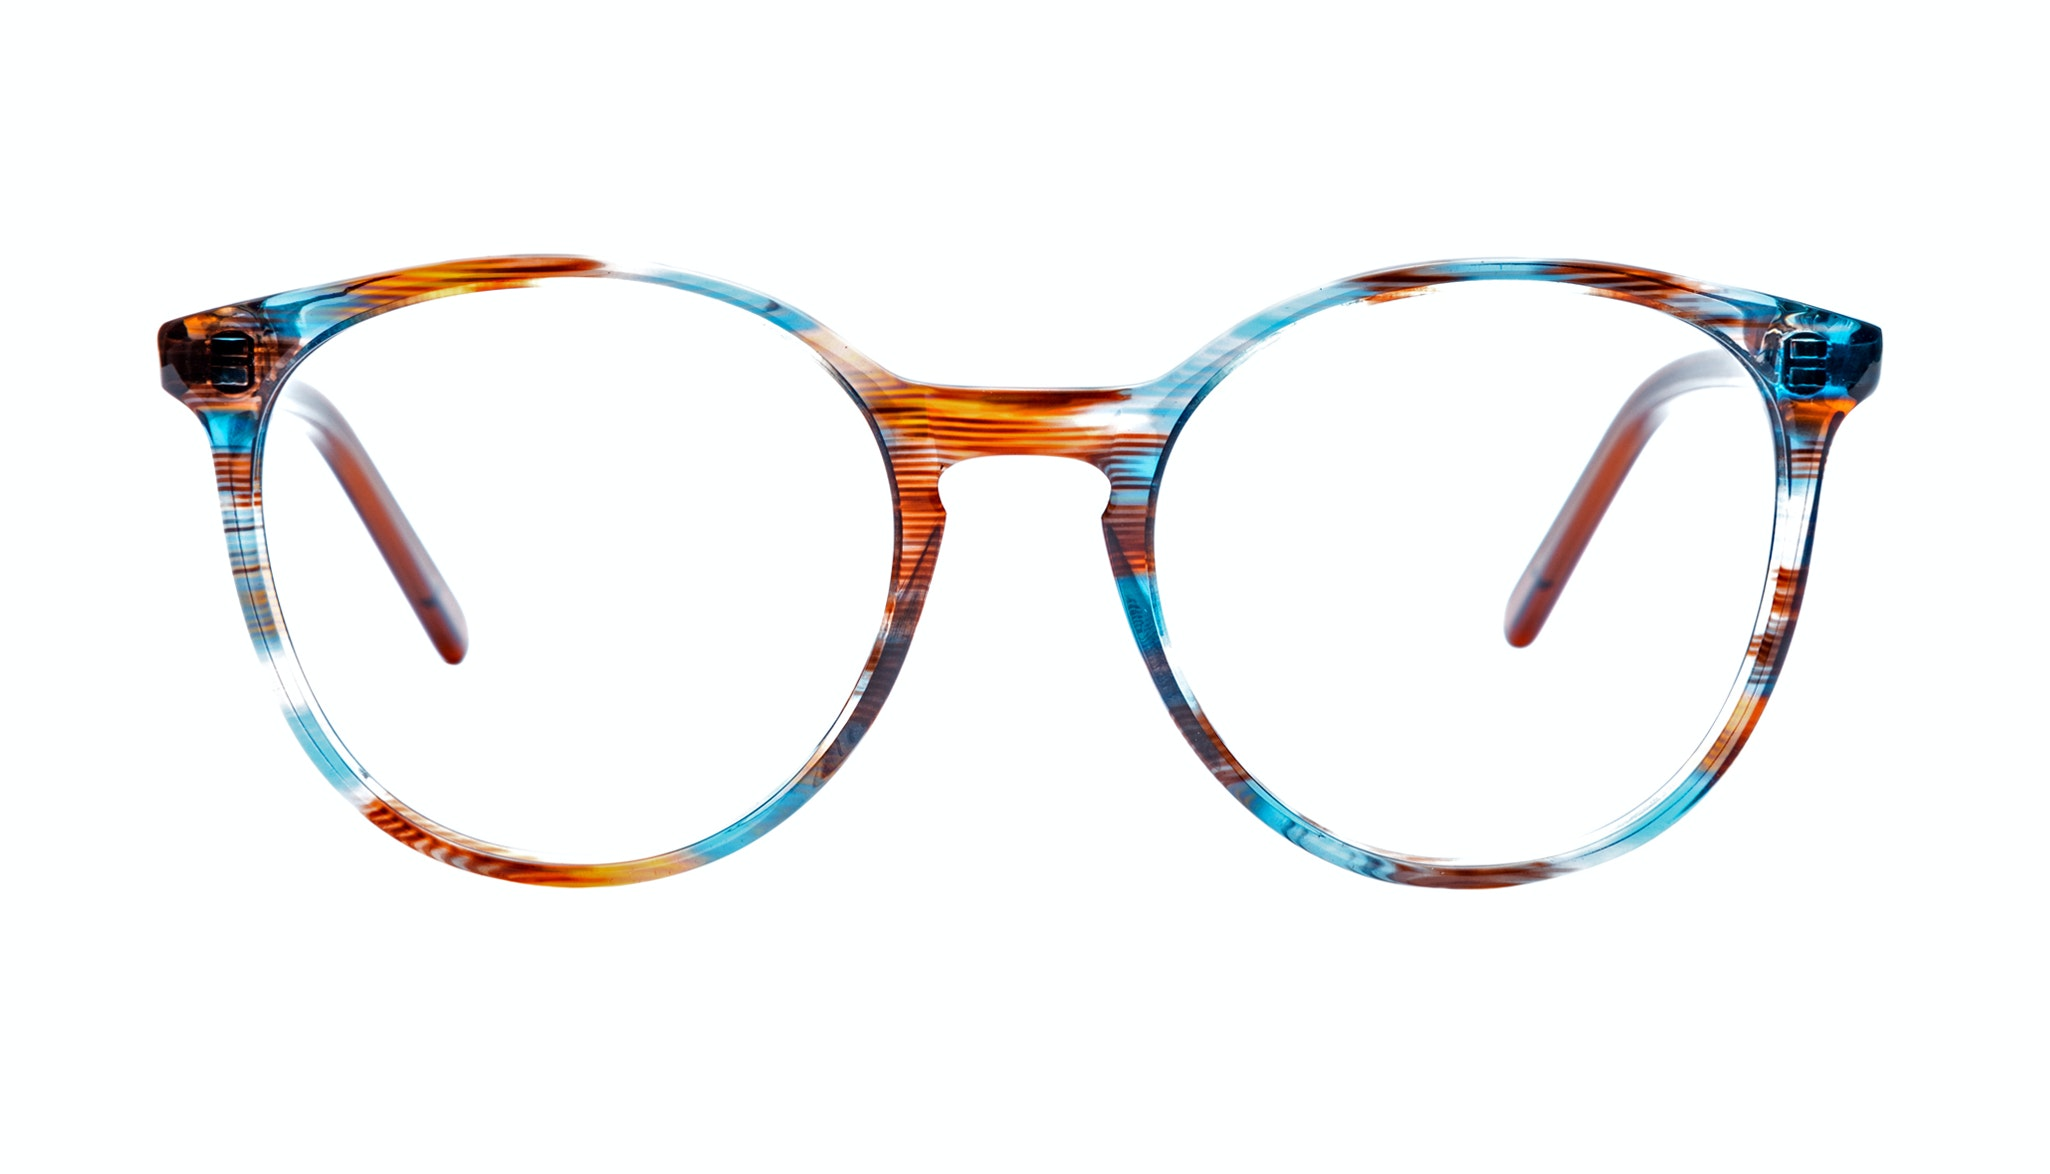 Affordable Fashion Glasses Round Eyeglasses Women Embrace Rusty Teal